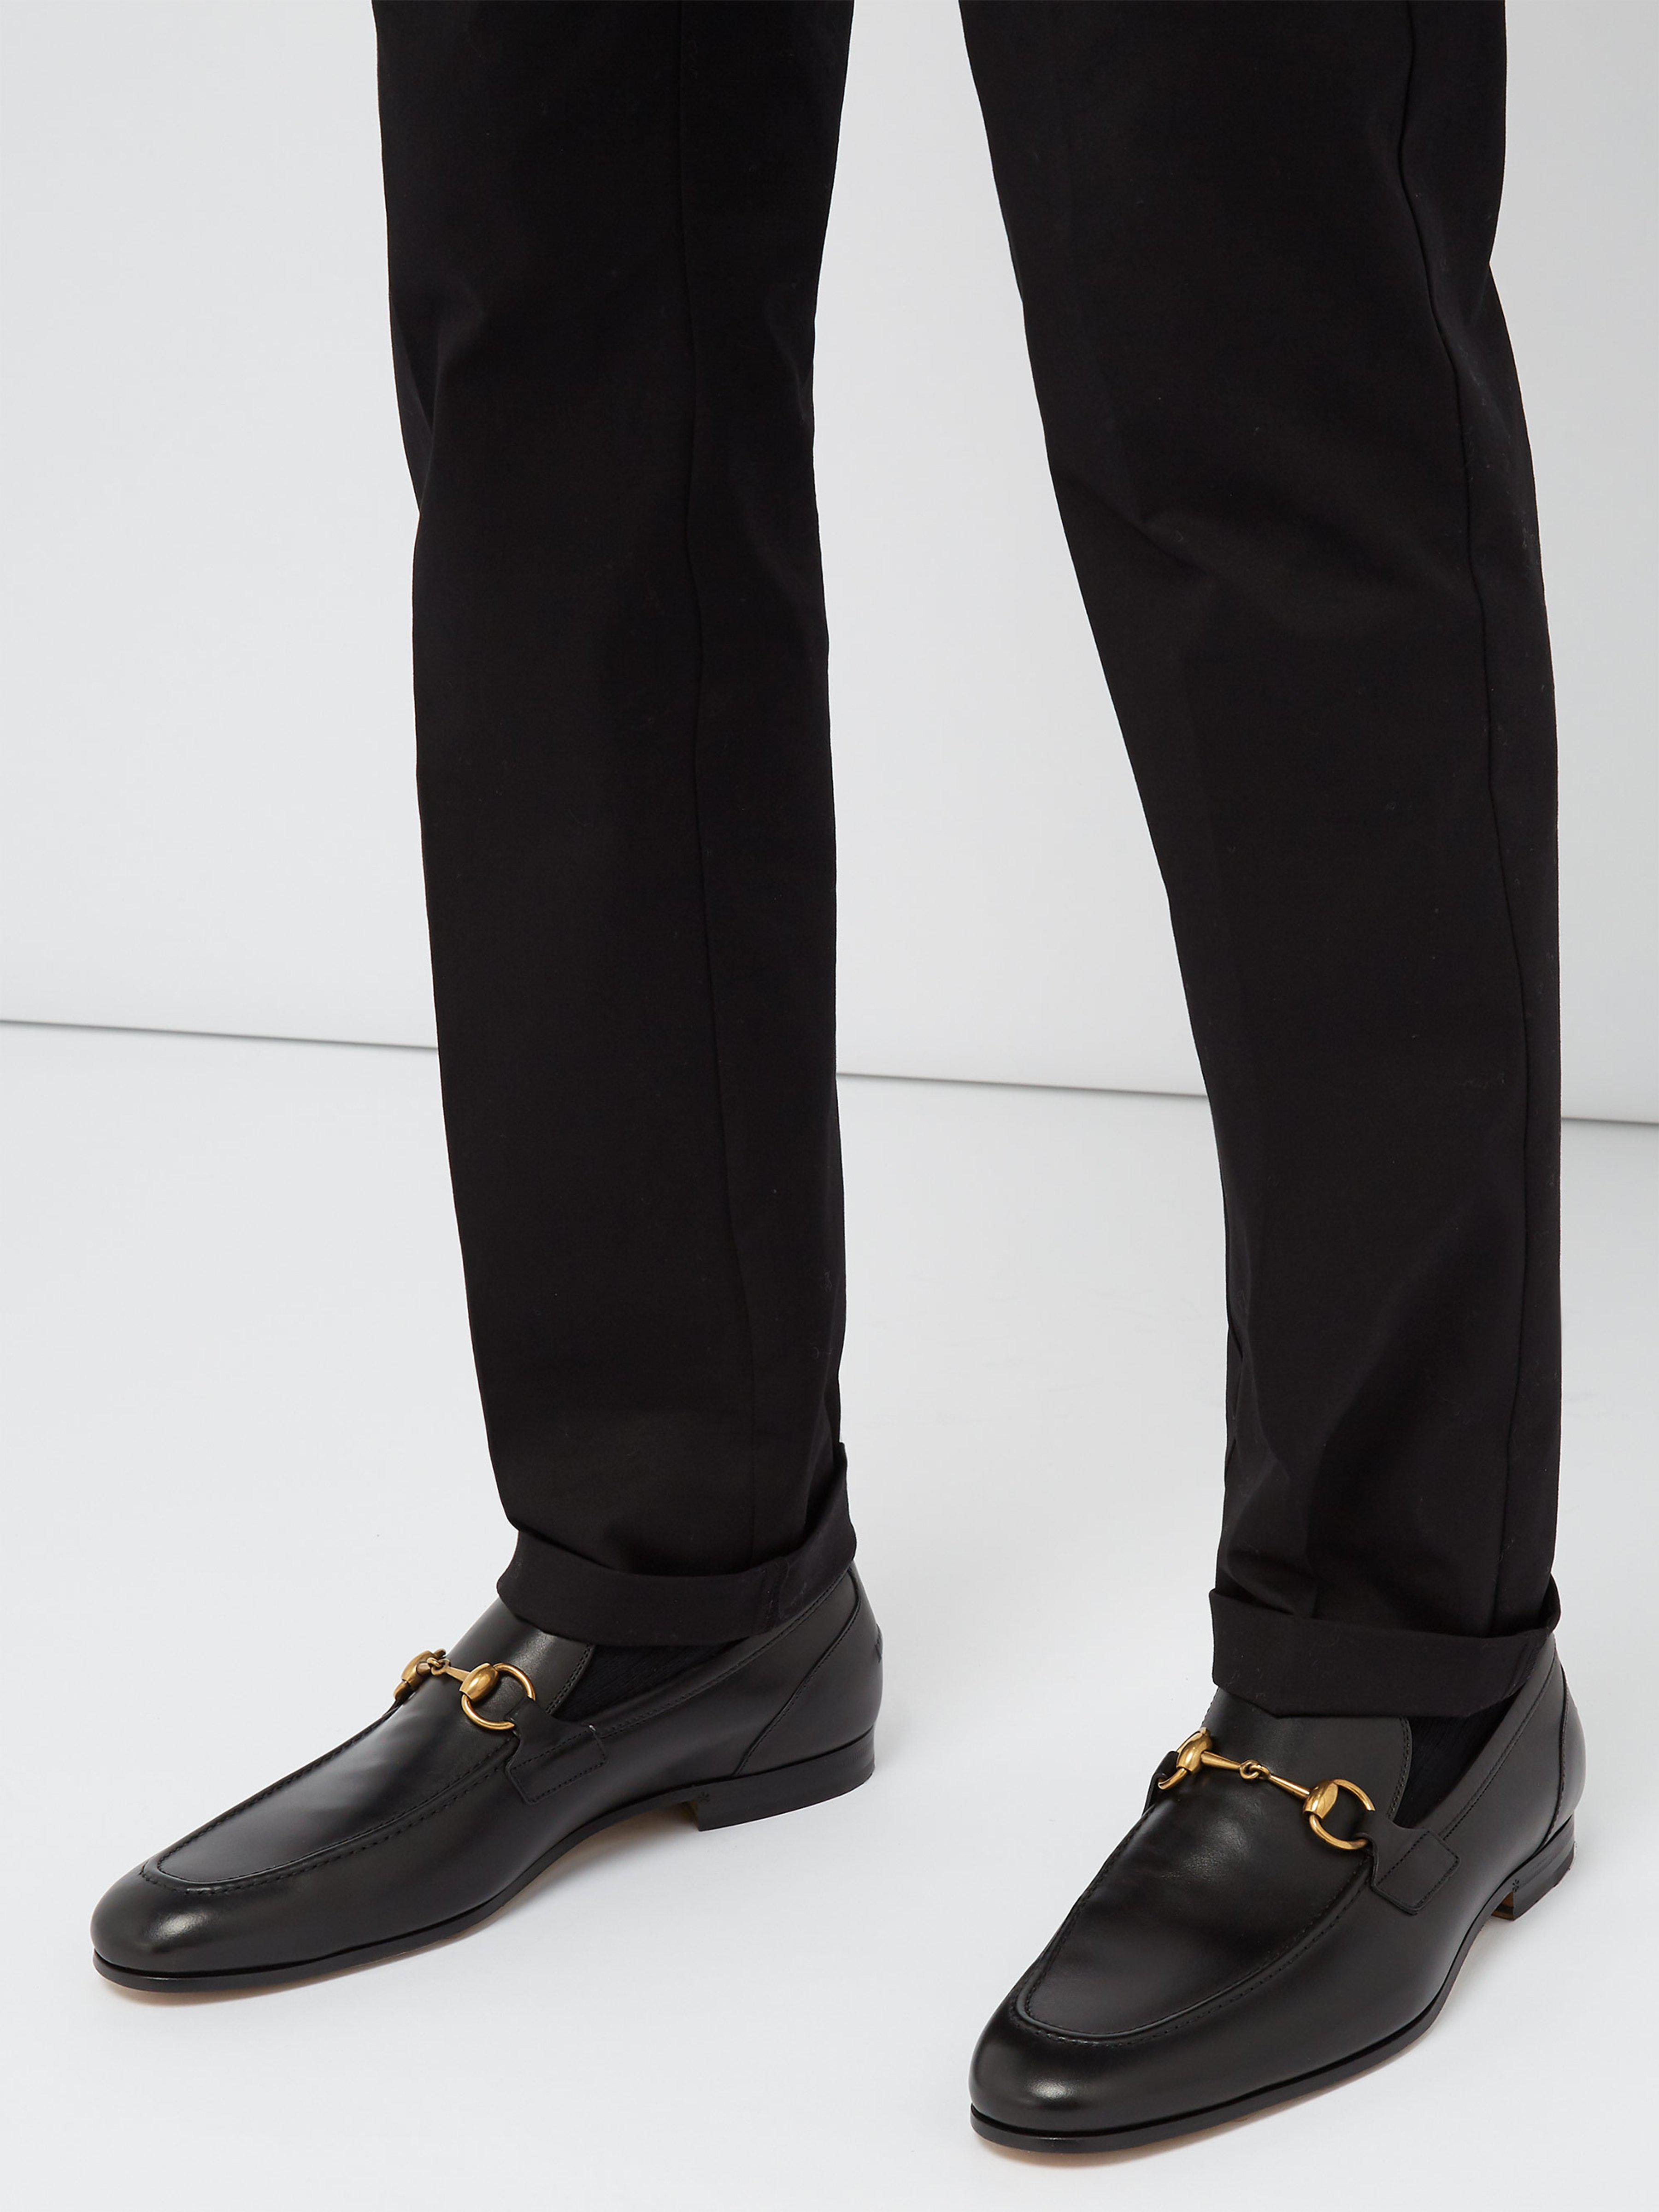 2bc47cff1 Gucci - Black Jordaan Leather Loafers for Men - Lyst. View fullscreen